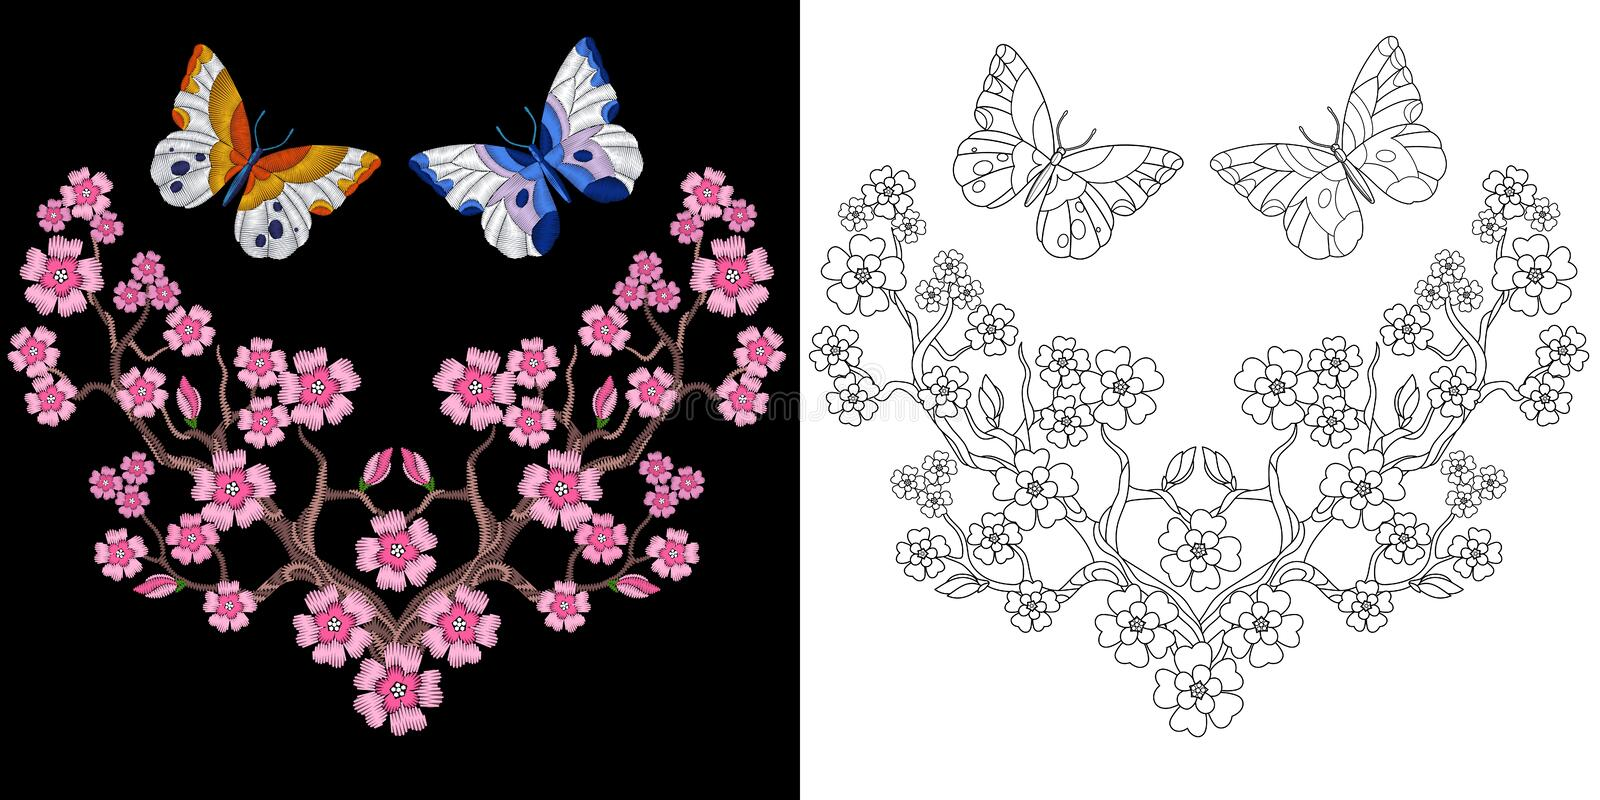 Embroidery butterfly and sakura design royalty free stock image